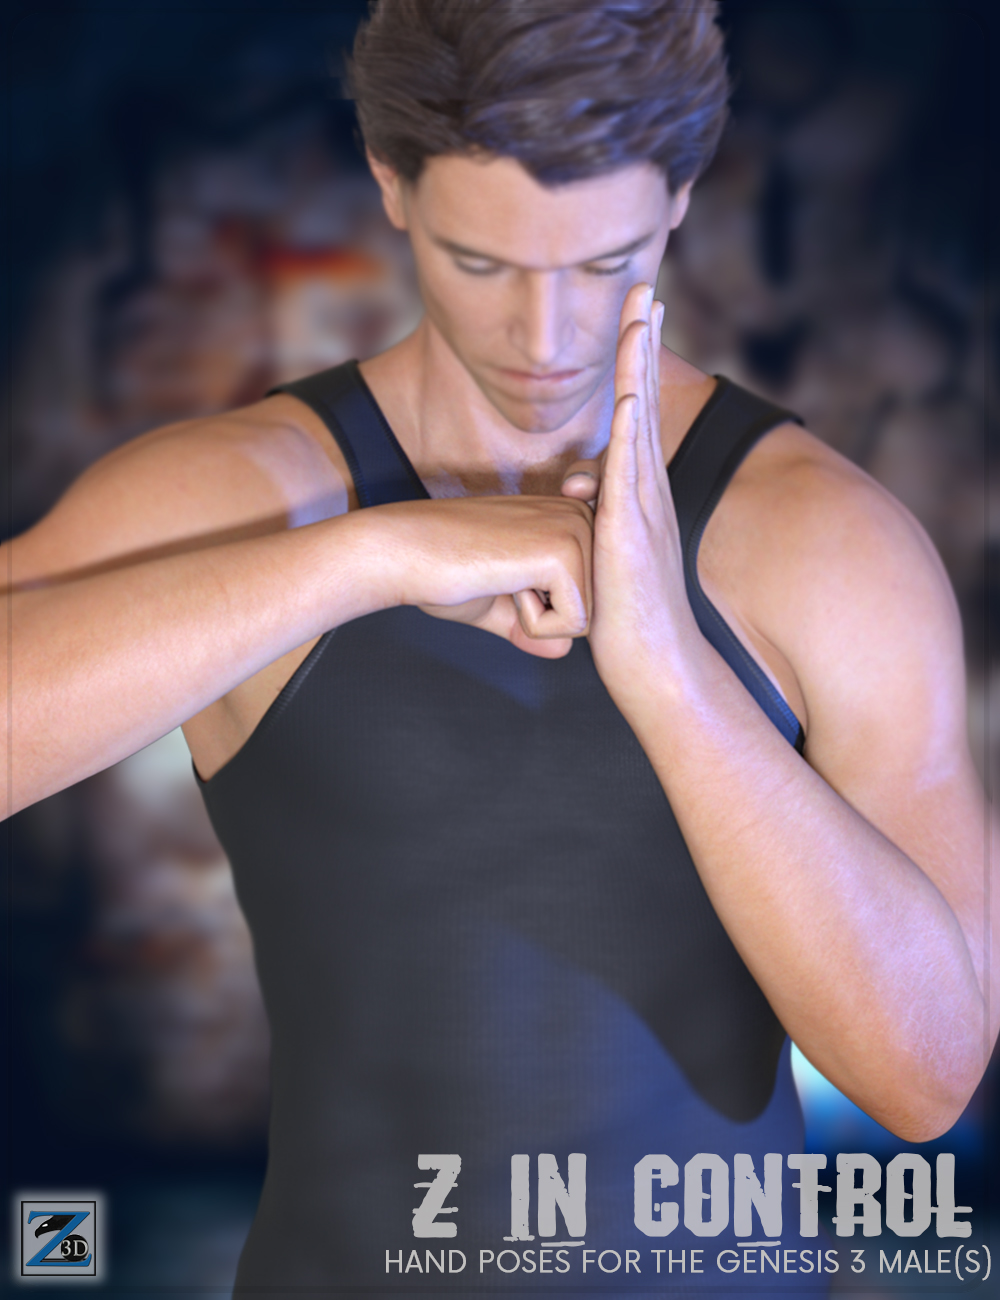 Z In Control - Hand Poses for the Genesis 3 Male(s) by: Zeddicuss, 3D Models by Daz 3D